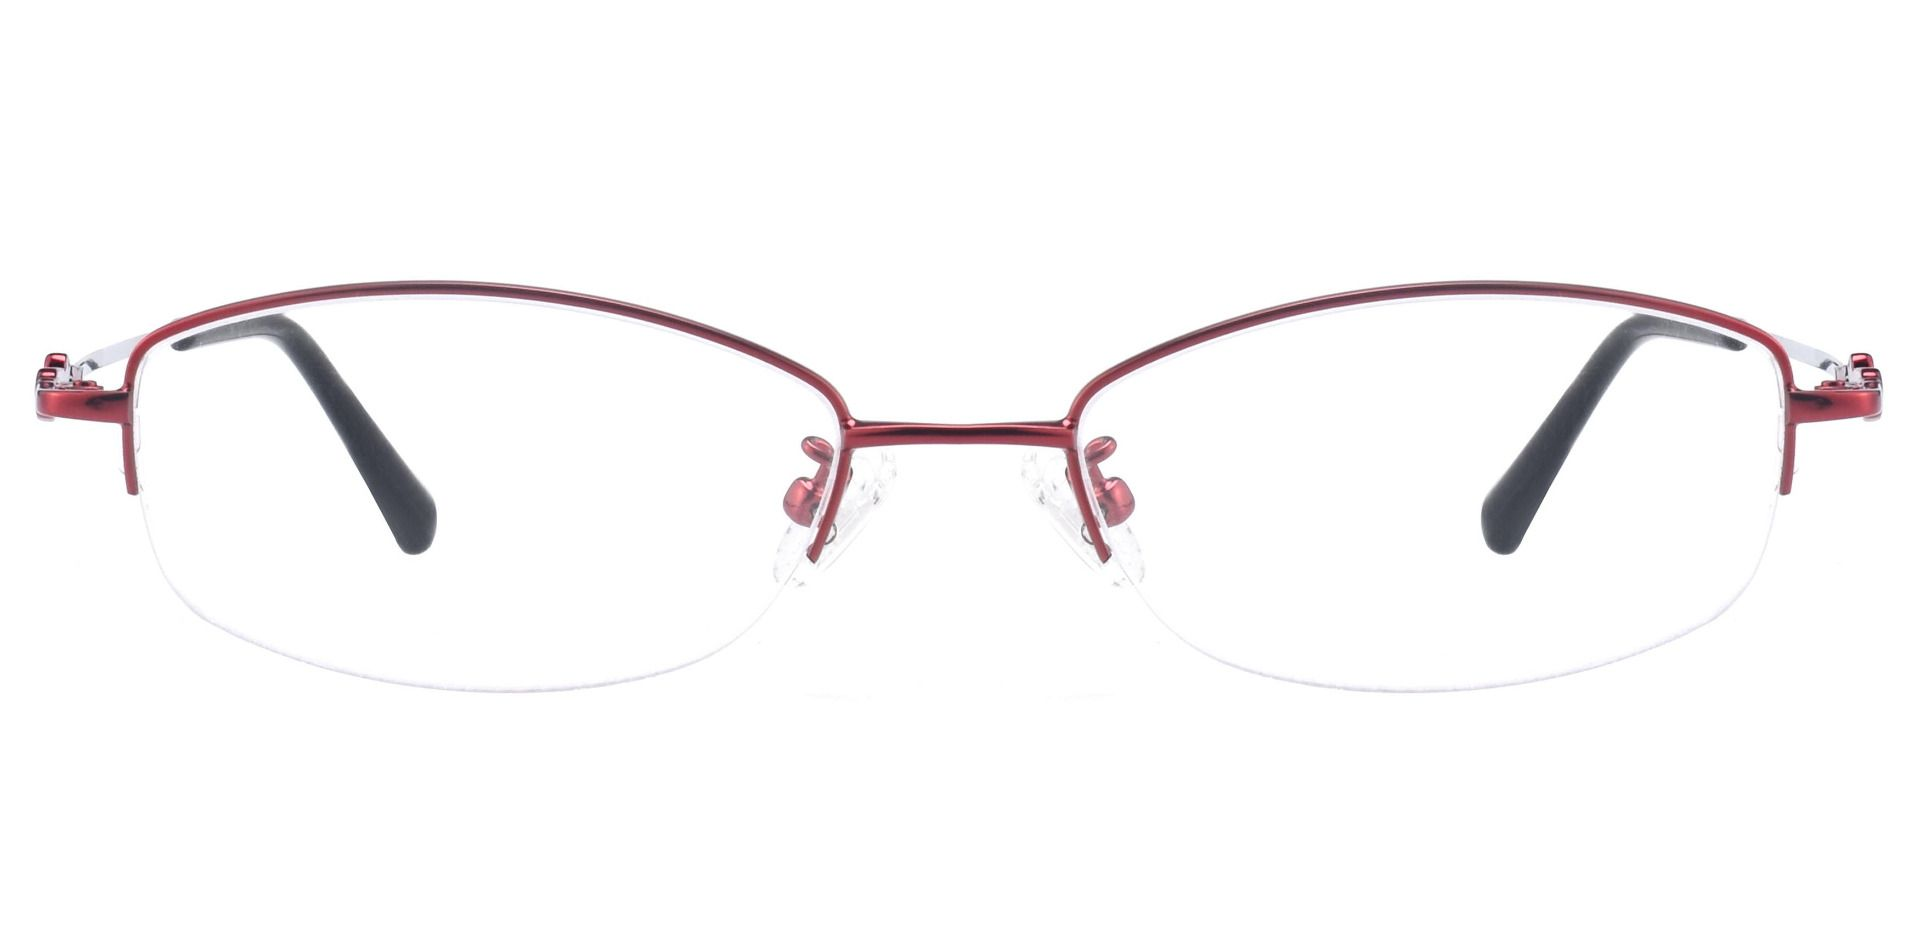 Meadowsweet Oval Prescription Glasses - Red